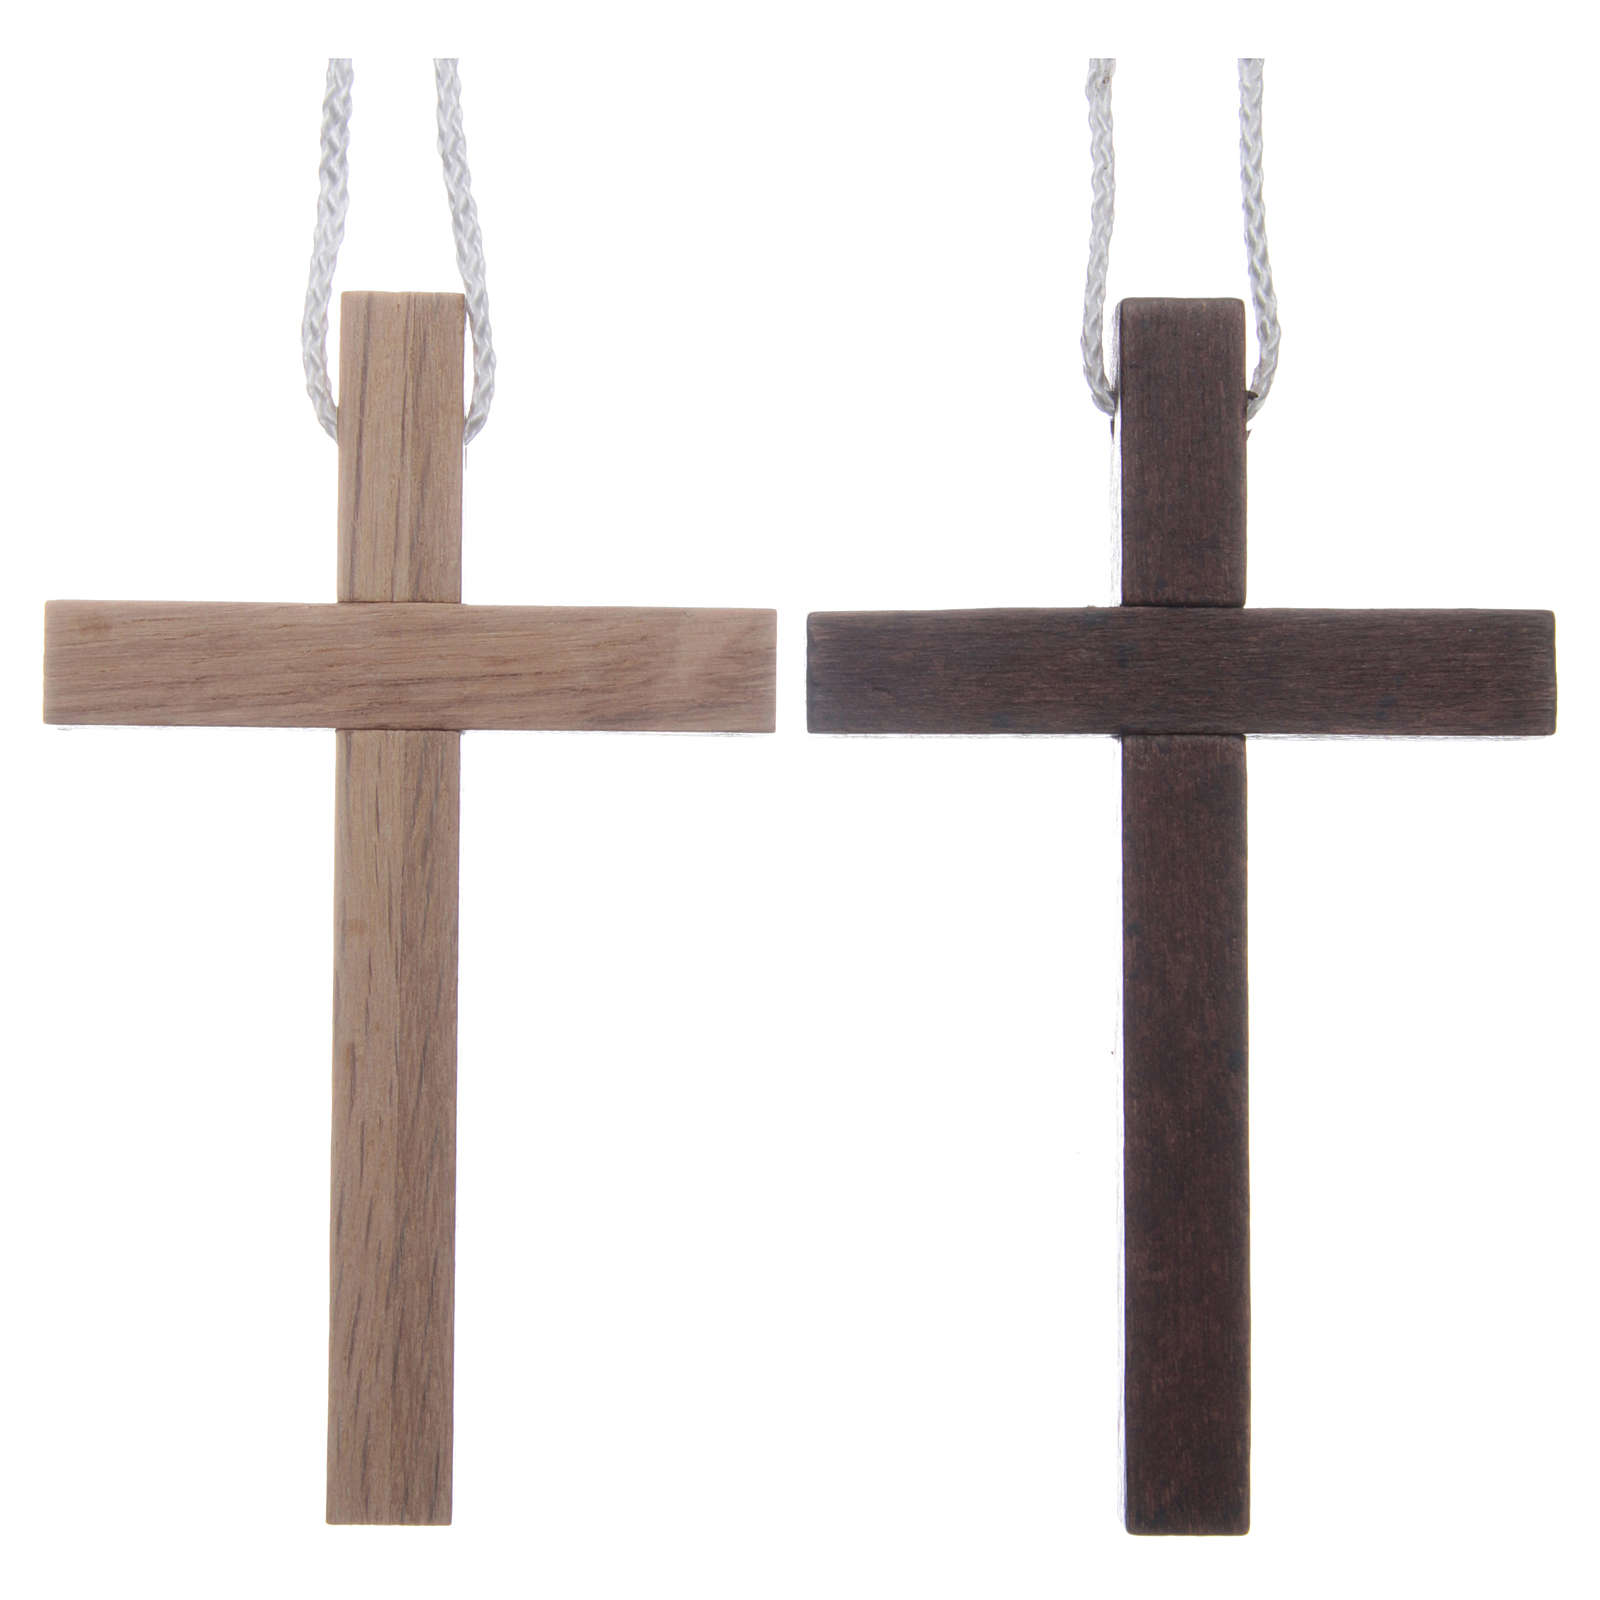 Small cross for First Communion and Confirmation 4